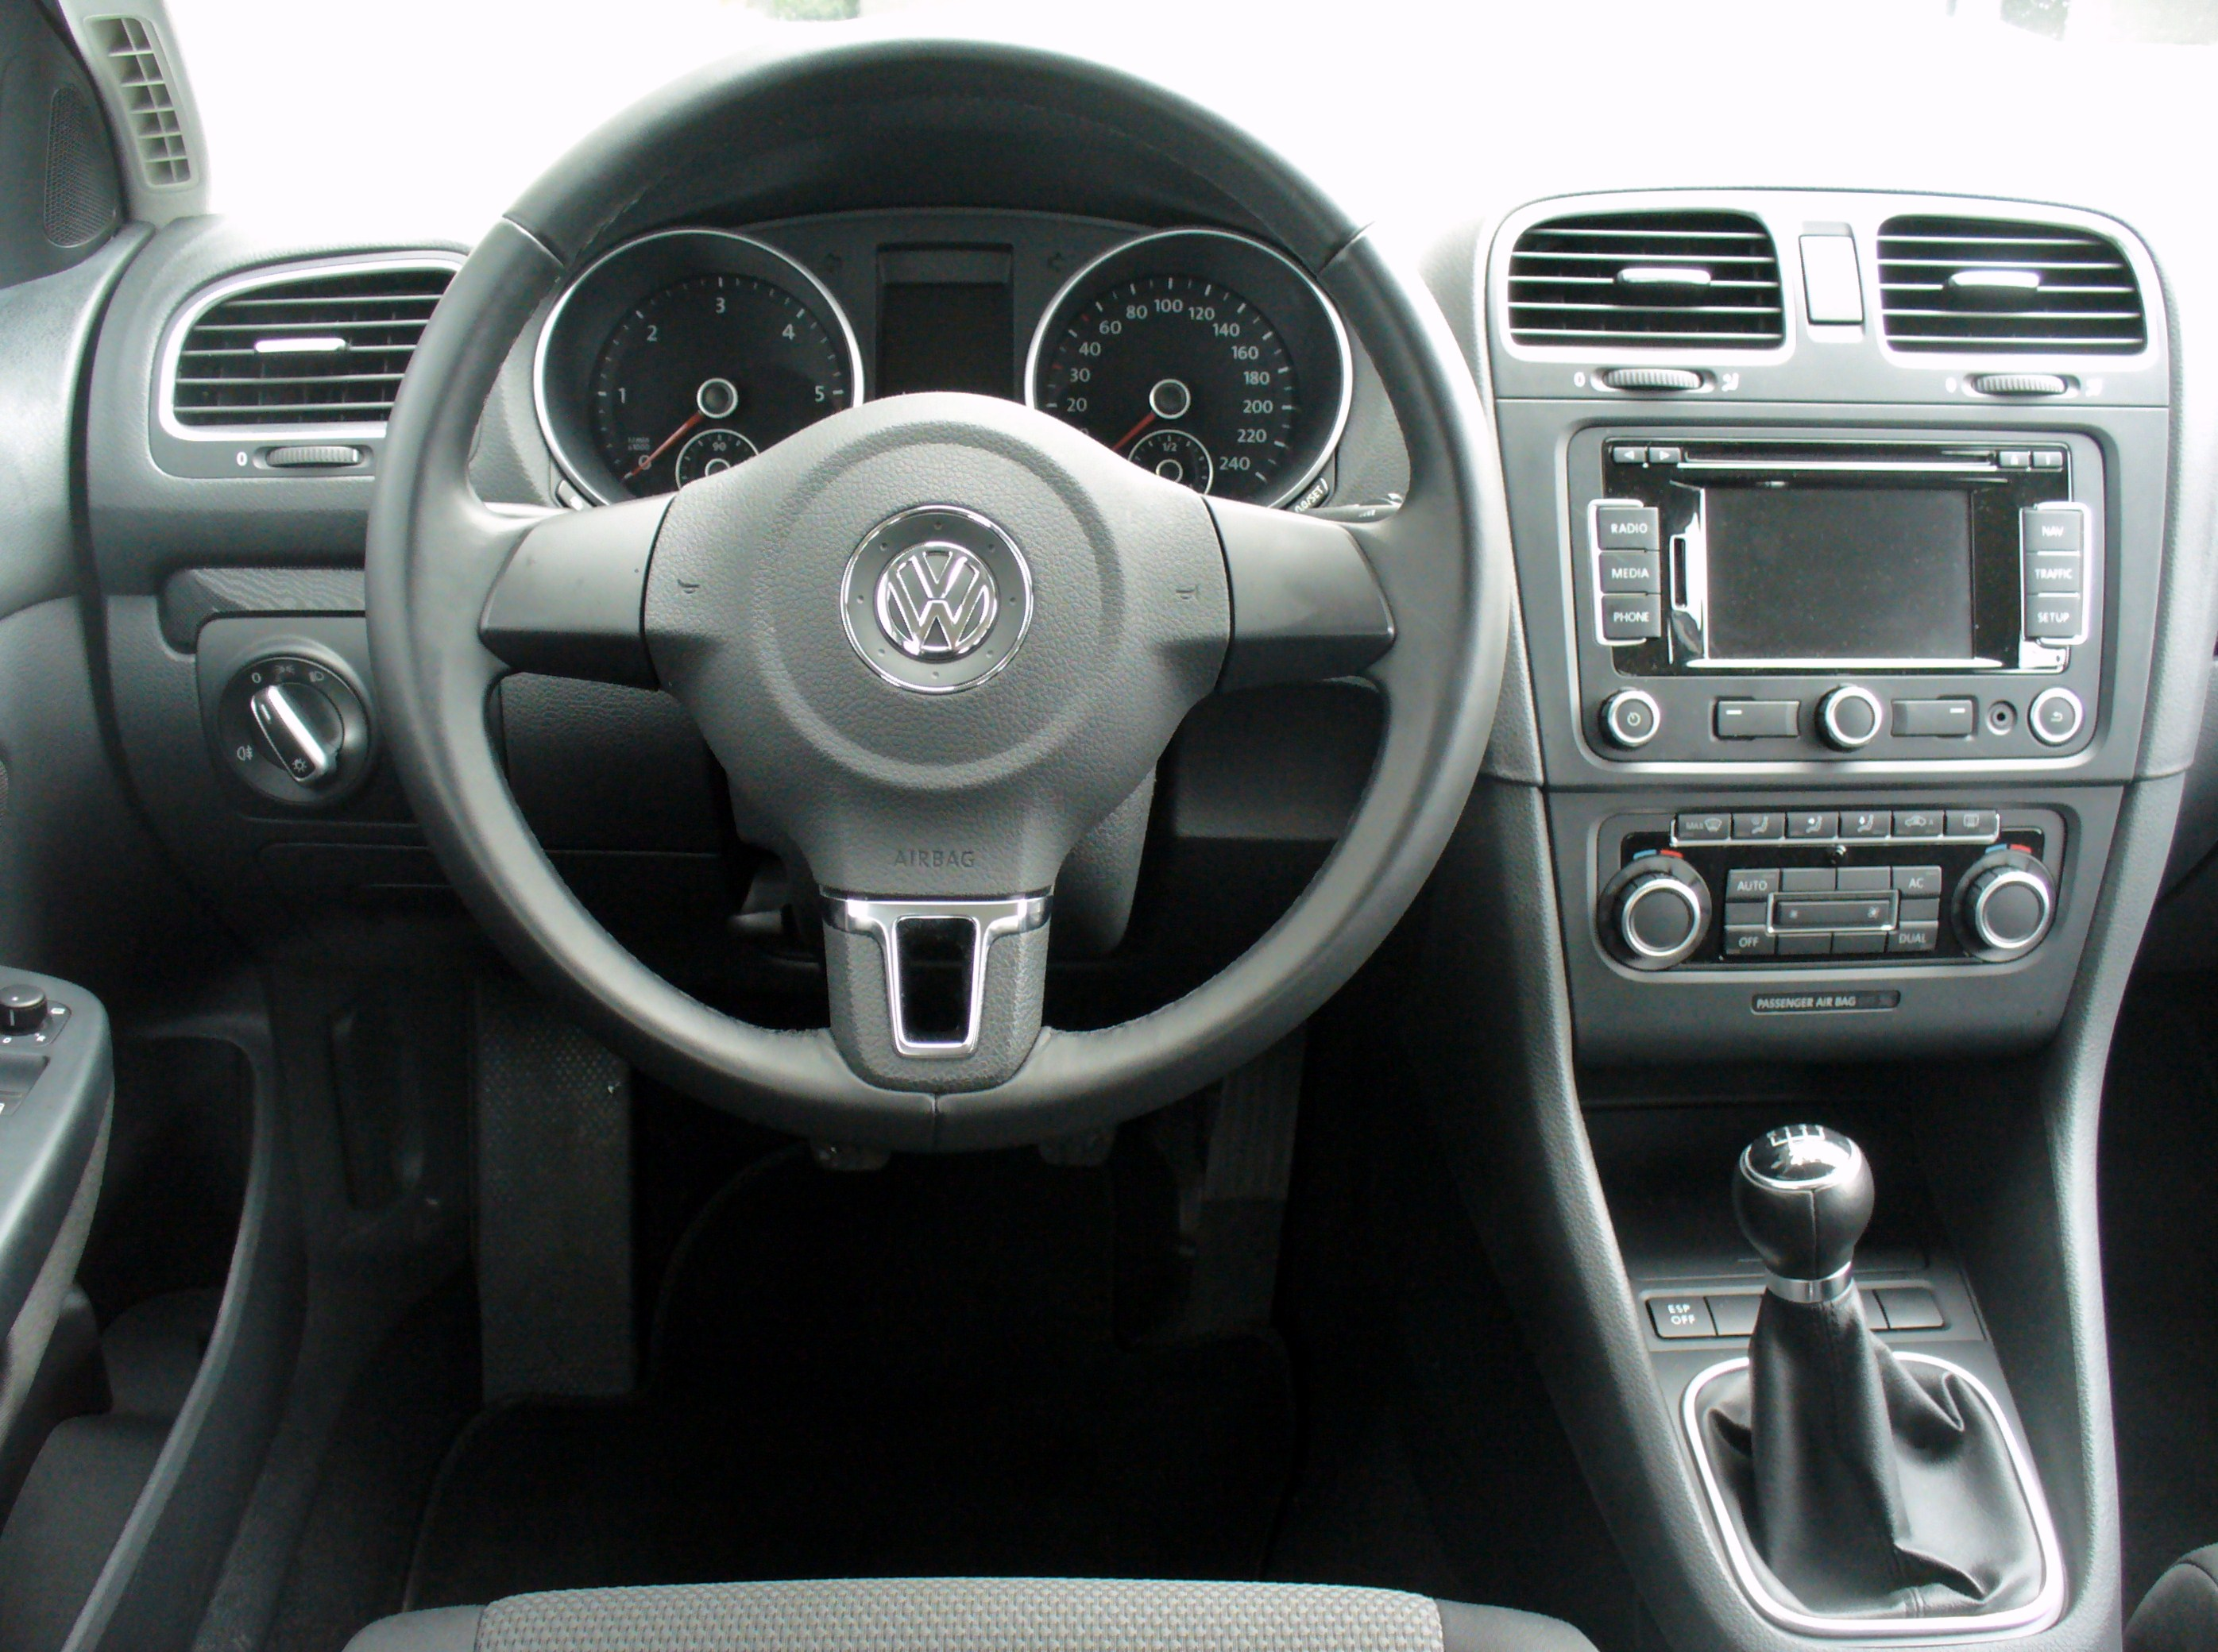 datei vw golf vi variant 1 6 tdi comfortline reflexsilber interieur jpg wikipedia. Black Bedroom Furniture Sets. Home Design Ideas